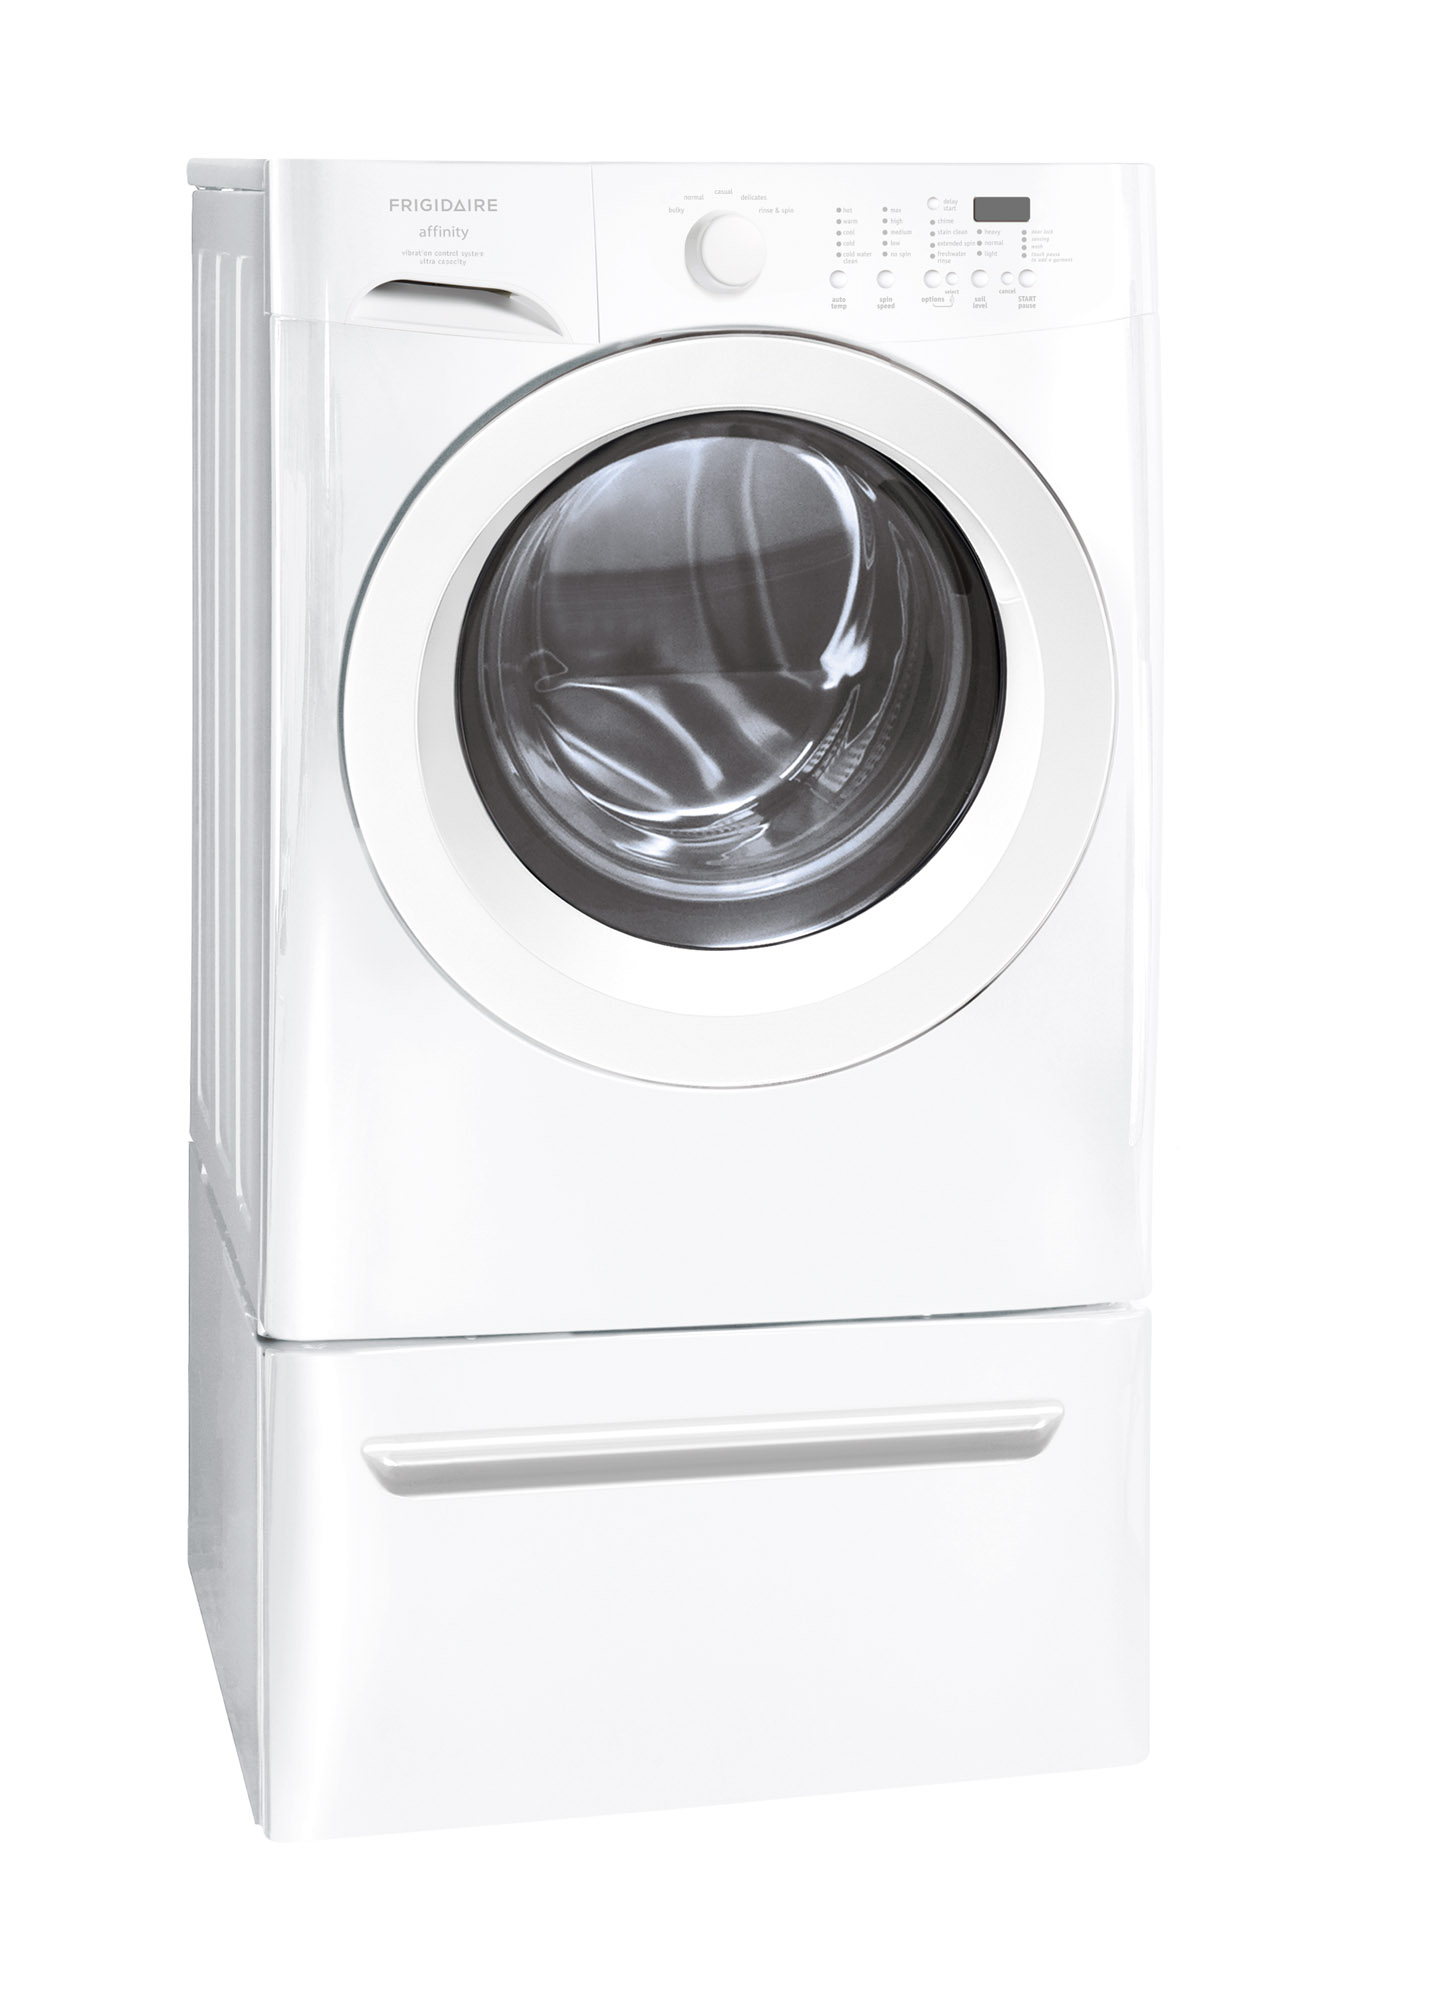 Frigidaire Affinity 3 26 Cu Ft Front Load Washer